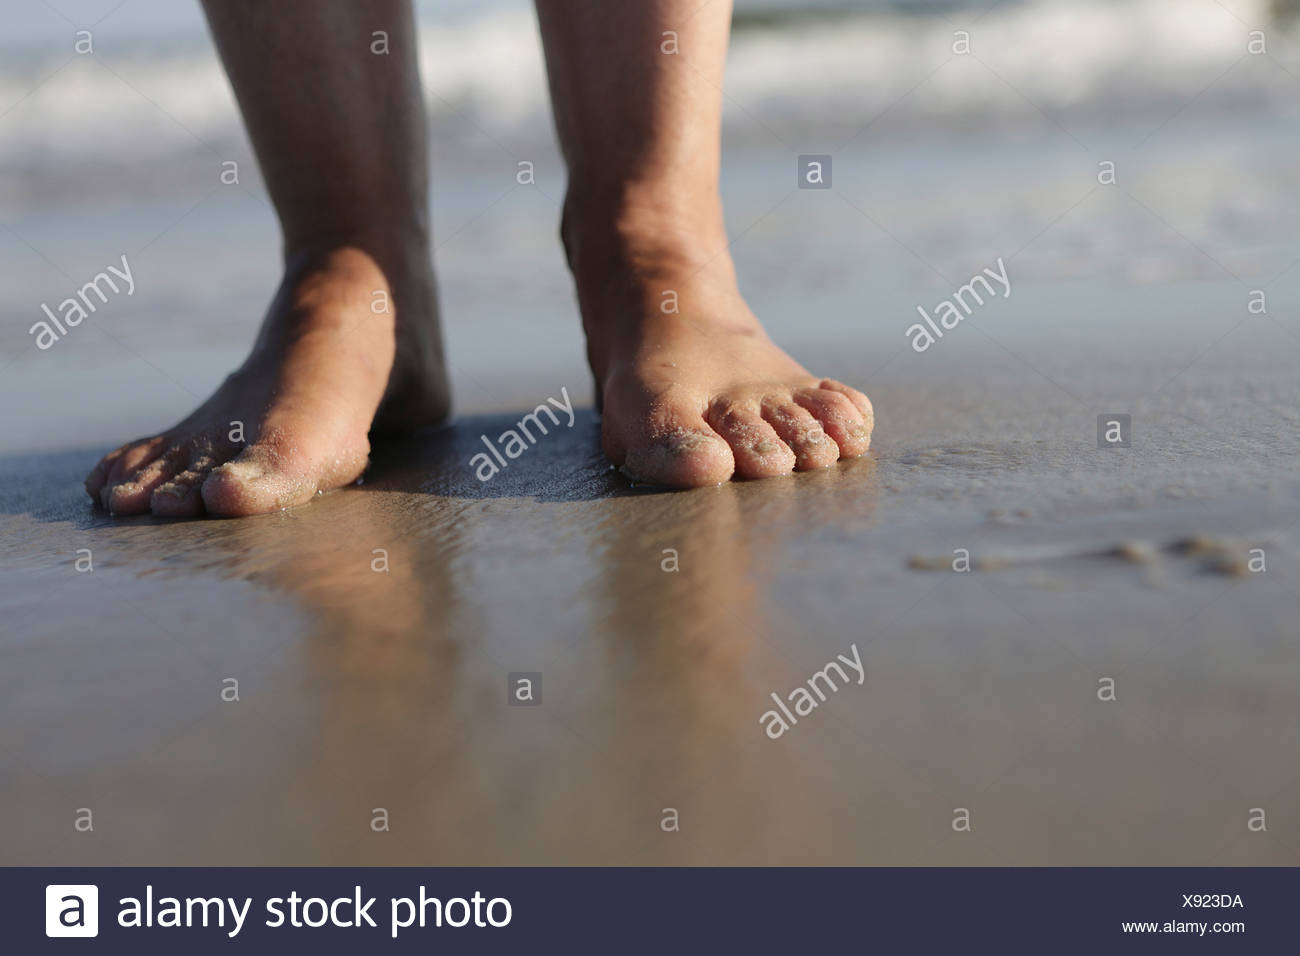 Germany, Lower Saxony, East Frisia, Langeoog, feet of a woman at the beach - Stock Image